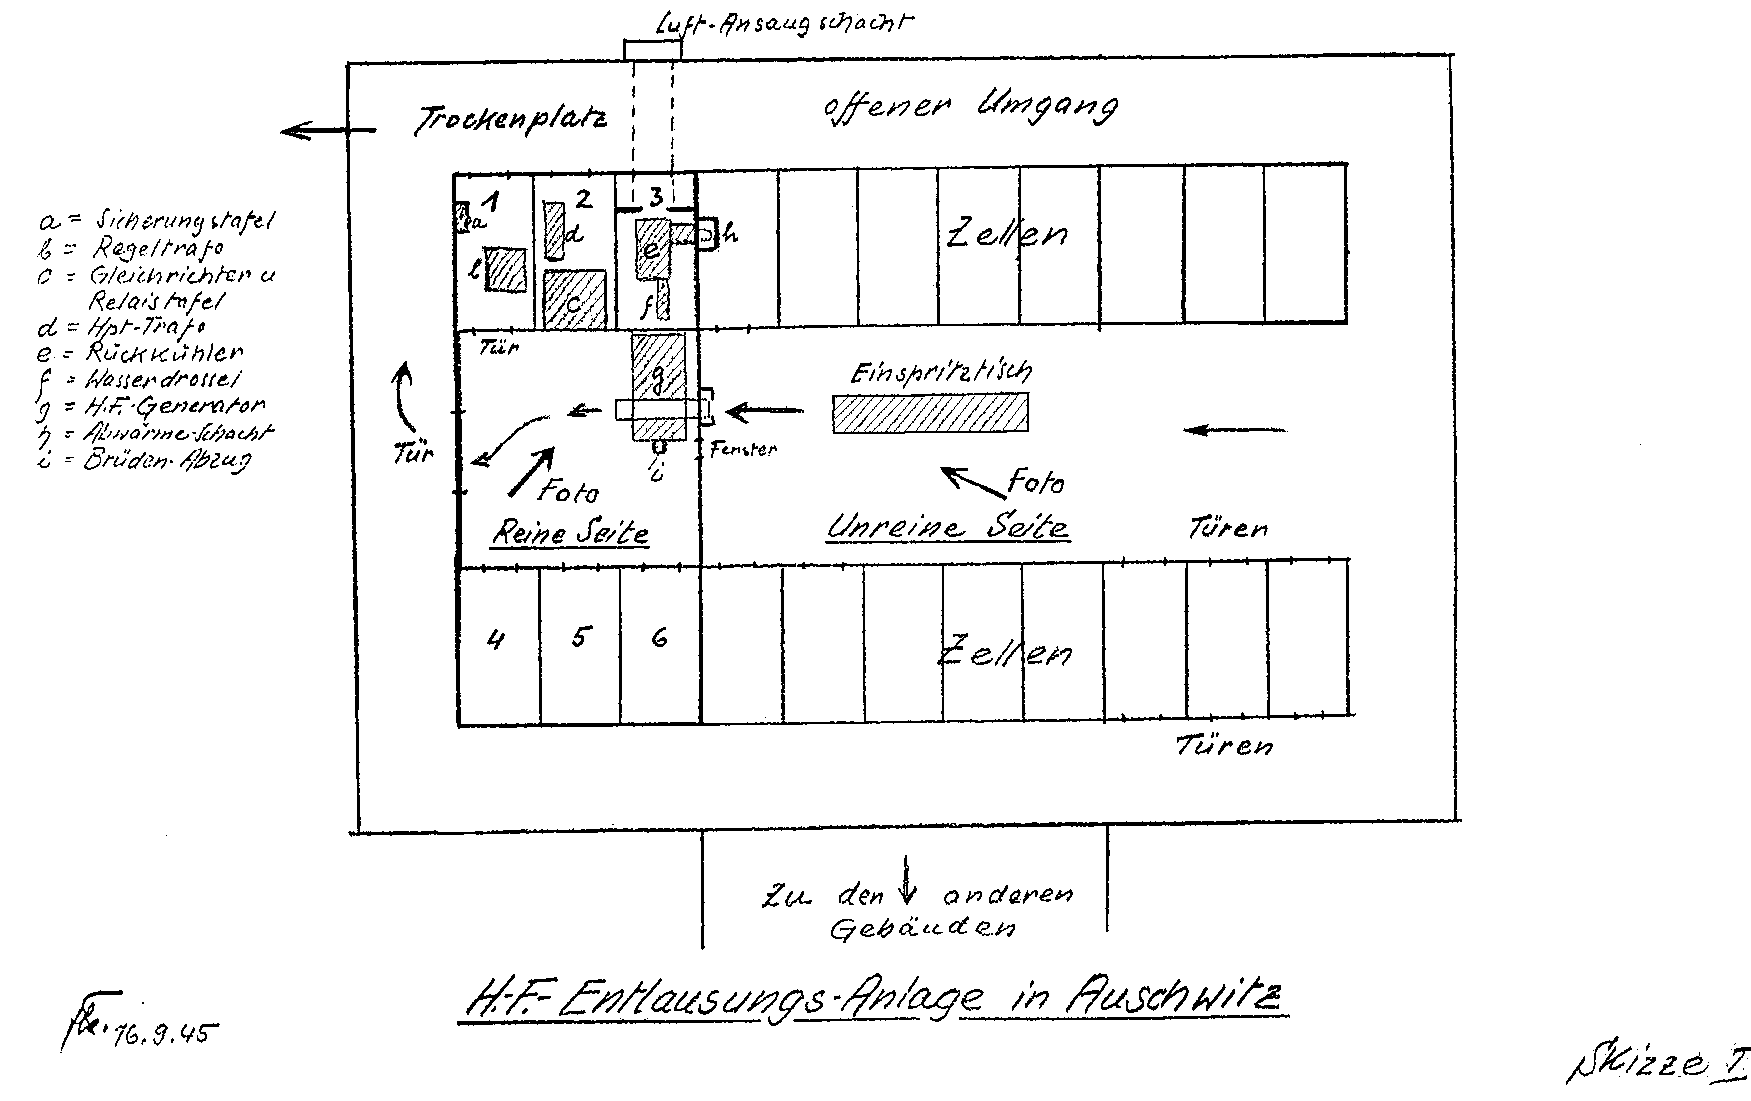 high frequency delousing facilities at auschwitz postwar diagram of a high frequency facility in auschwitz auschwitz was not the